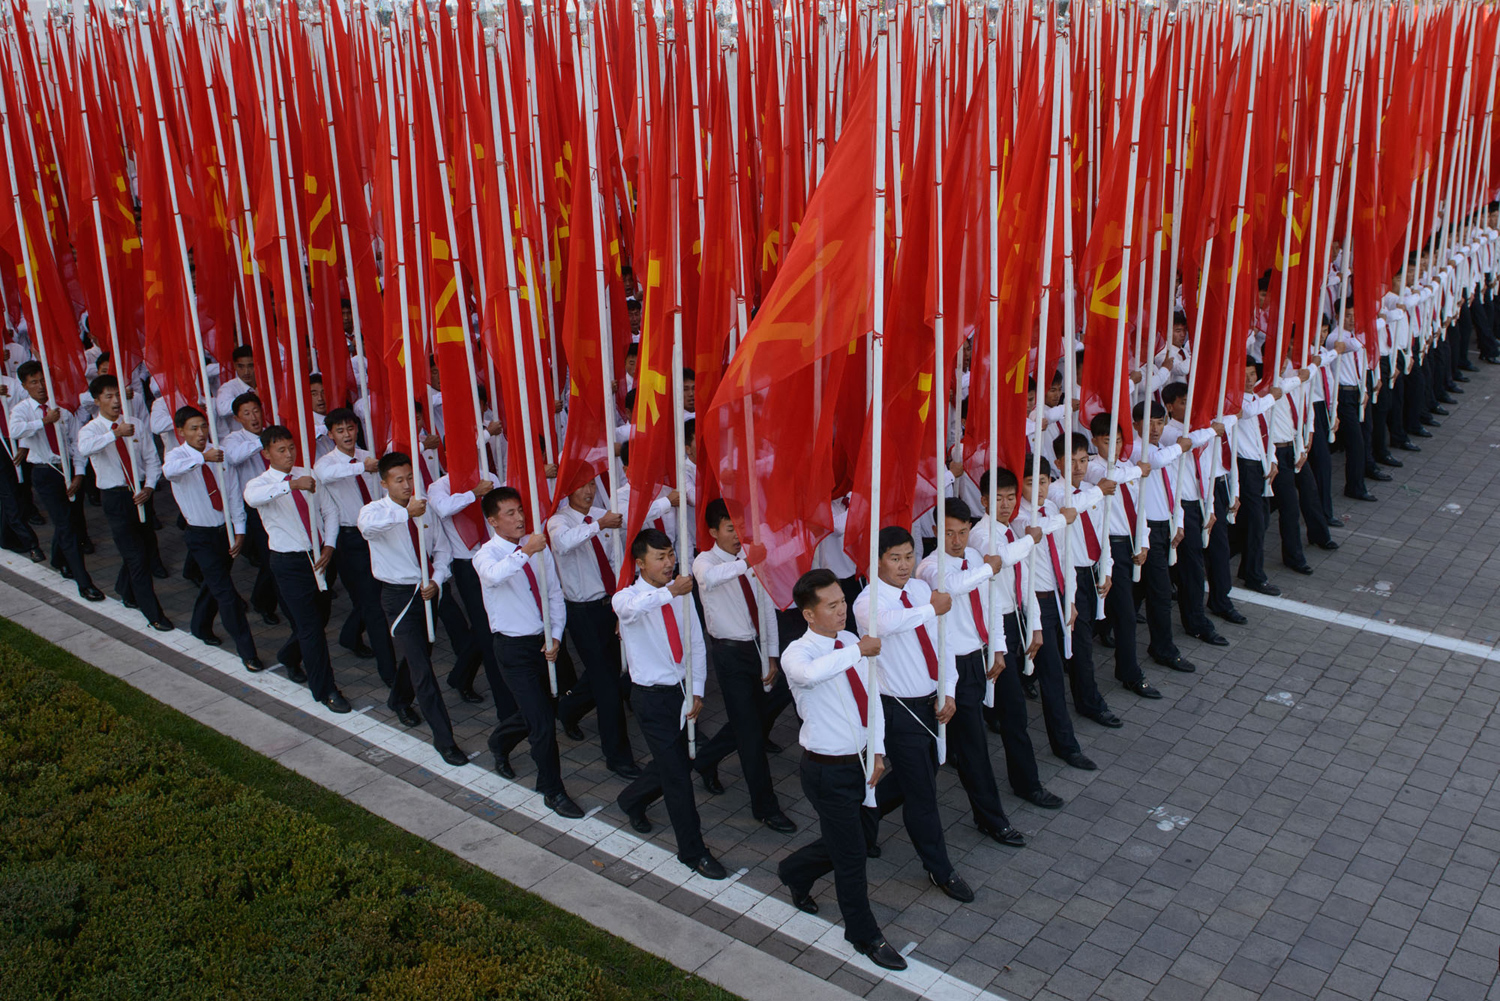 North Korea Marks 70 Years of Workers' Party Rule 09